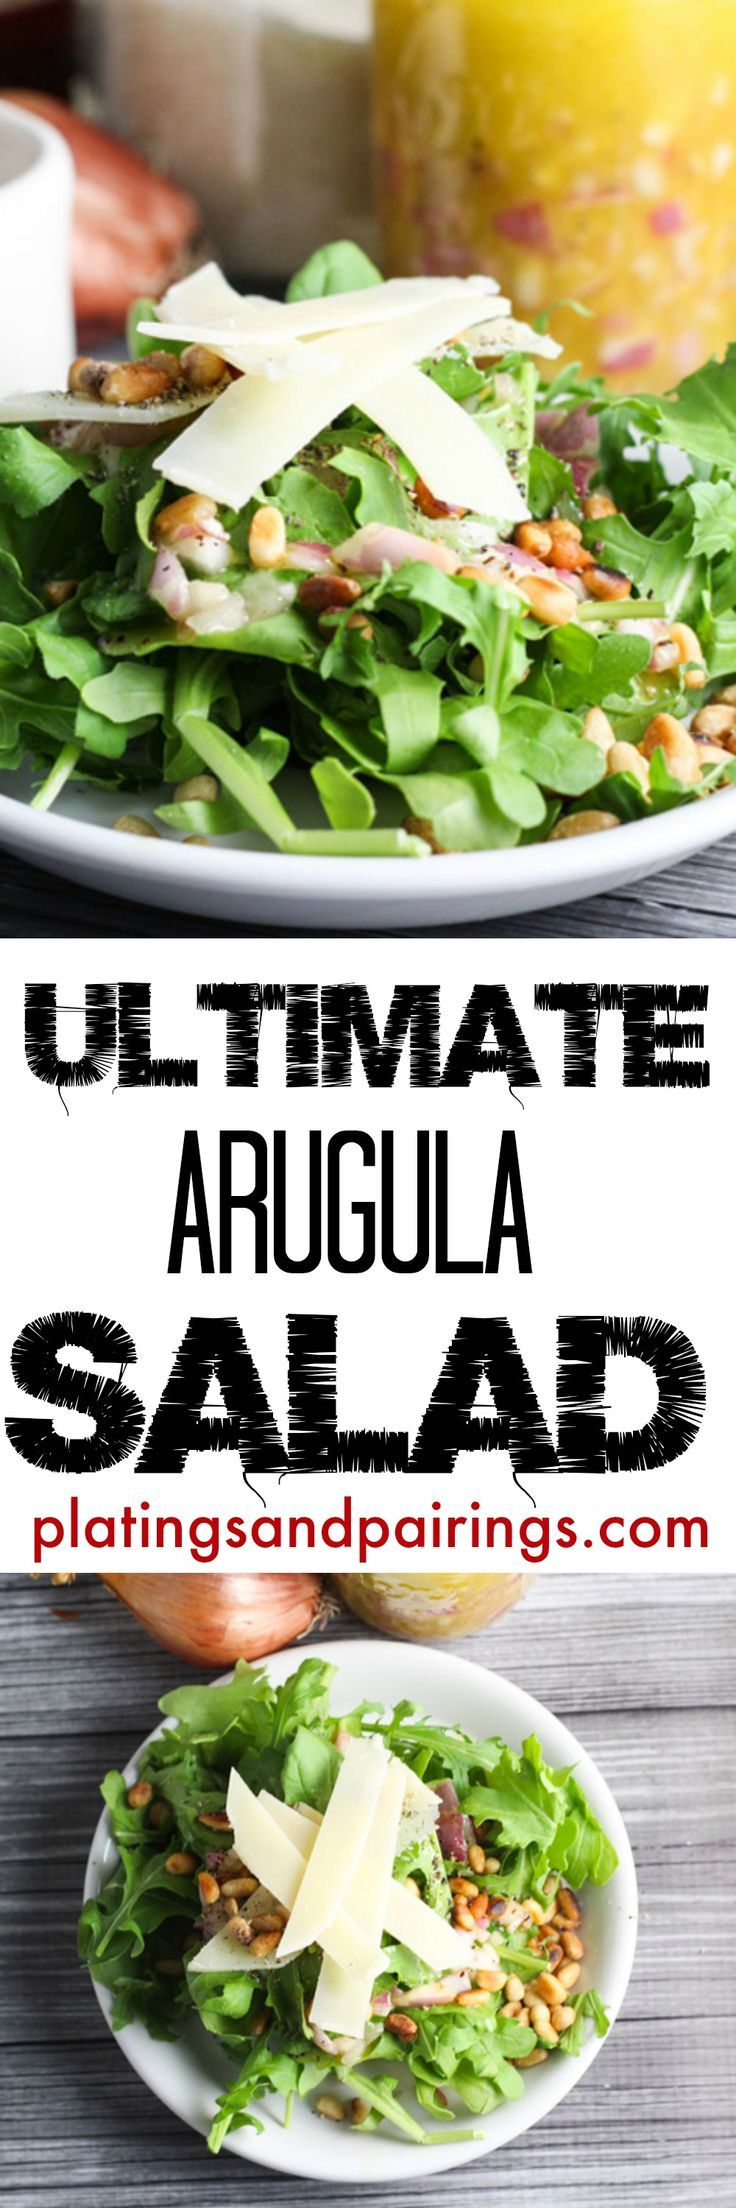 Such a simple, tasty salad that pairs with anything!